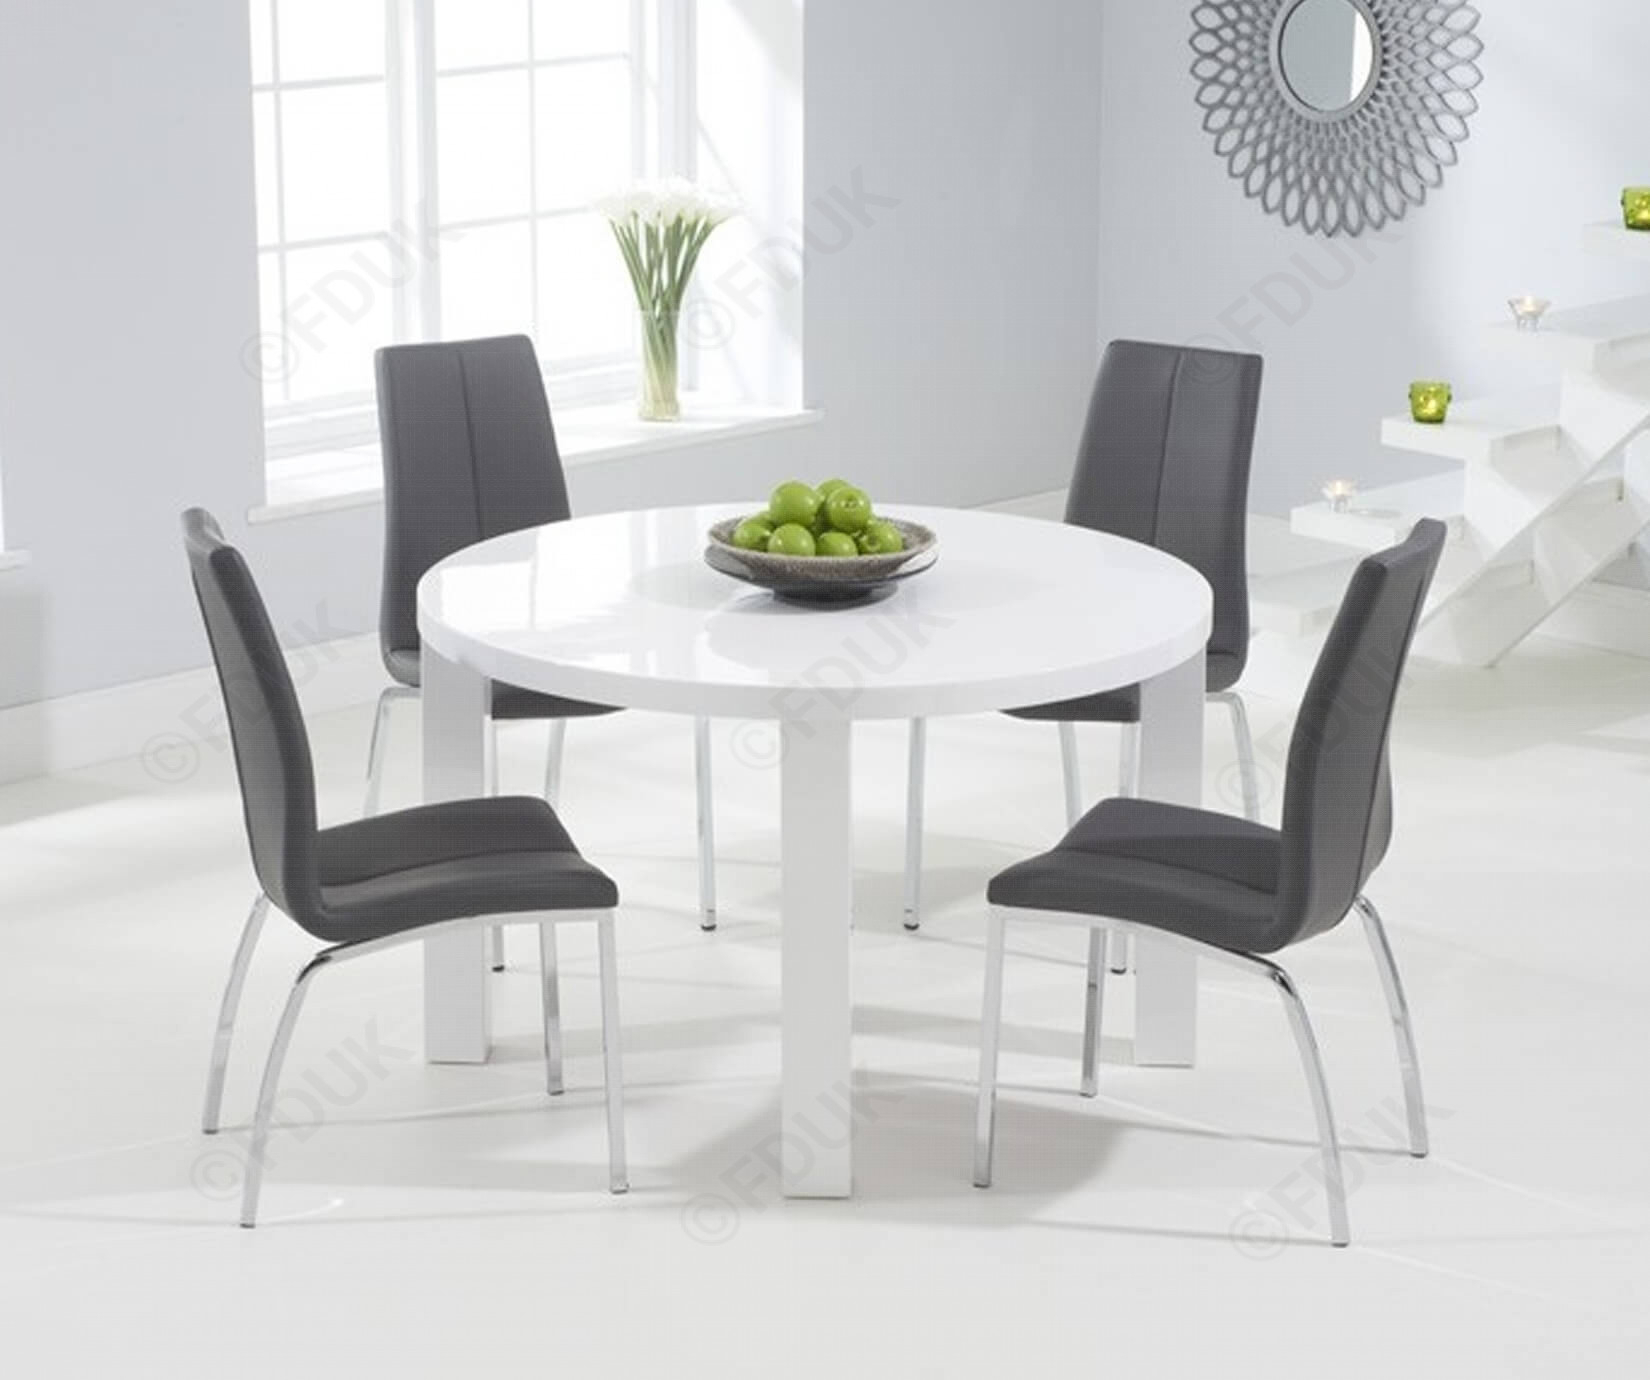 Round White Table You Ll Love In 2021 Visualhunt